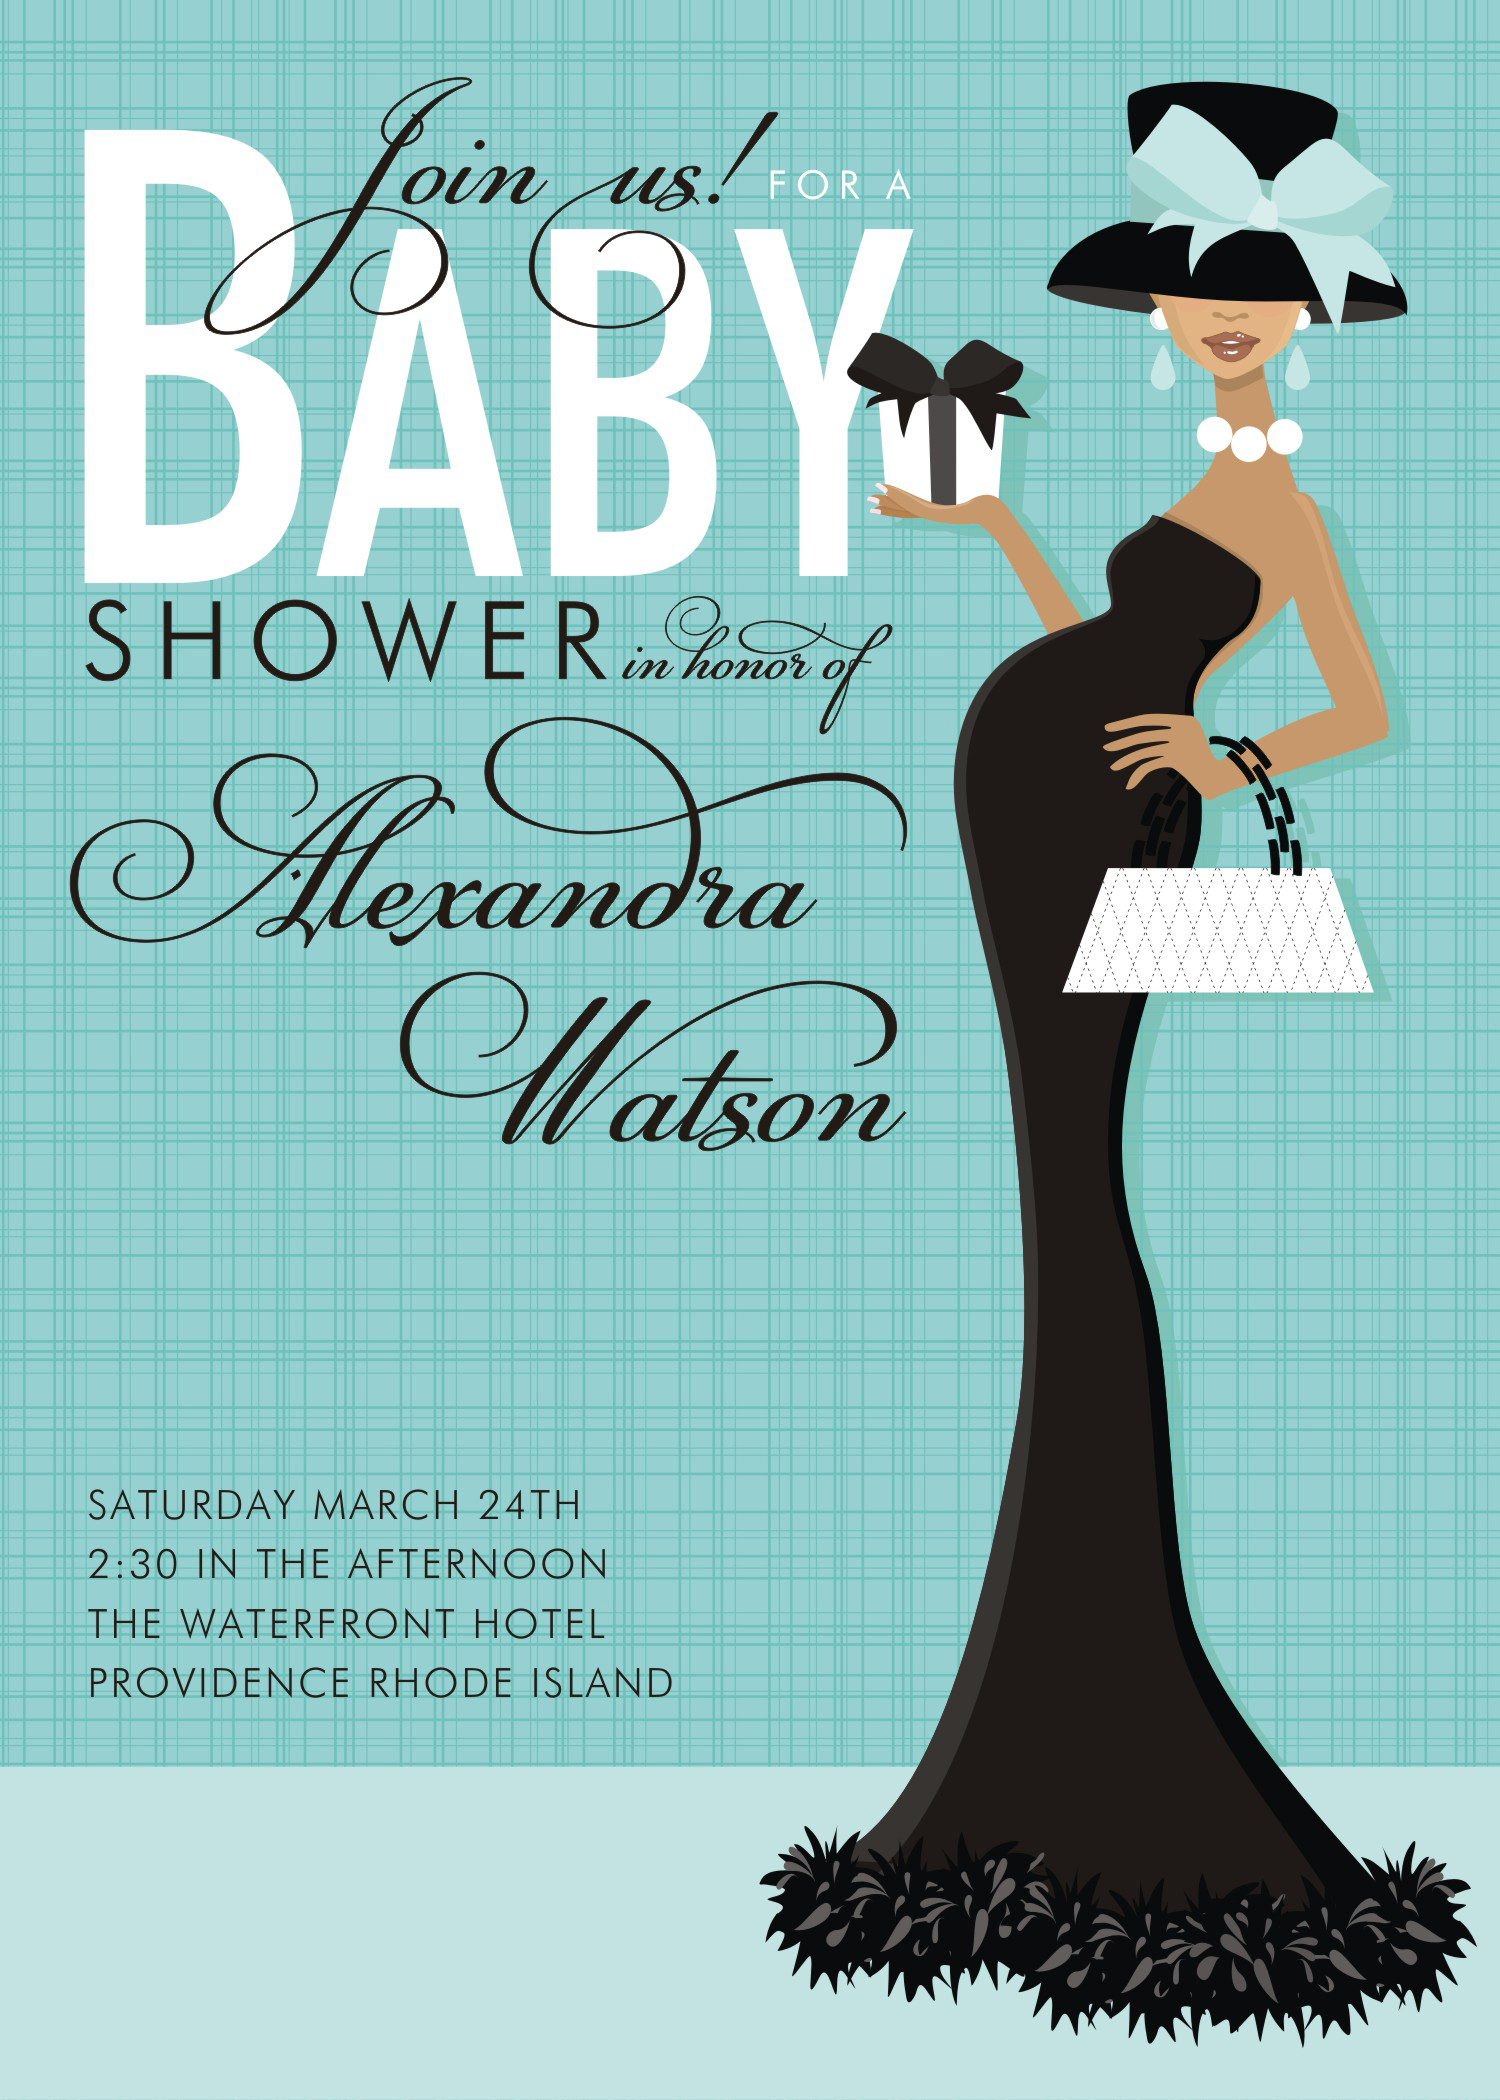 Amazing Free Template For Baby Shower Invitations | Invitations Ideas throughout Lovely Free Baby Shower Invitations